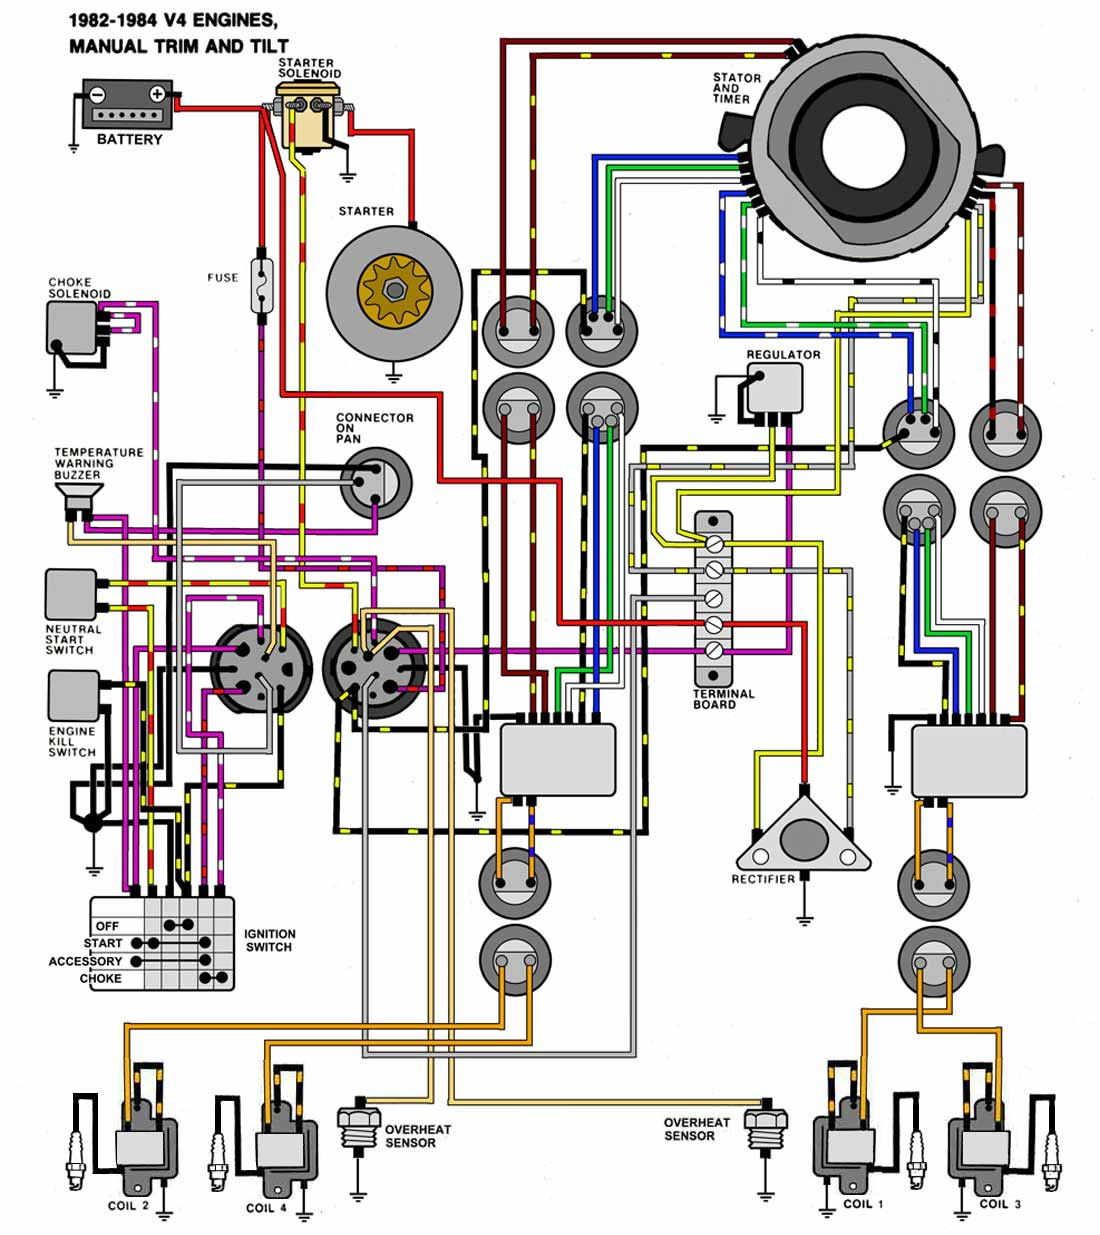 evinrude outboard motor wiring diagram newmotorspot co ford neutral safety switch wiring 1982 evinrude 90hp ignition switch wire colors page 1 iboats johnson evinrude outboard service manual